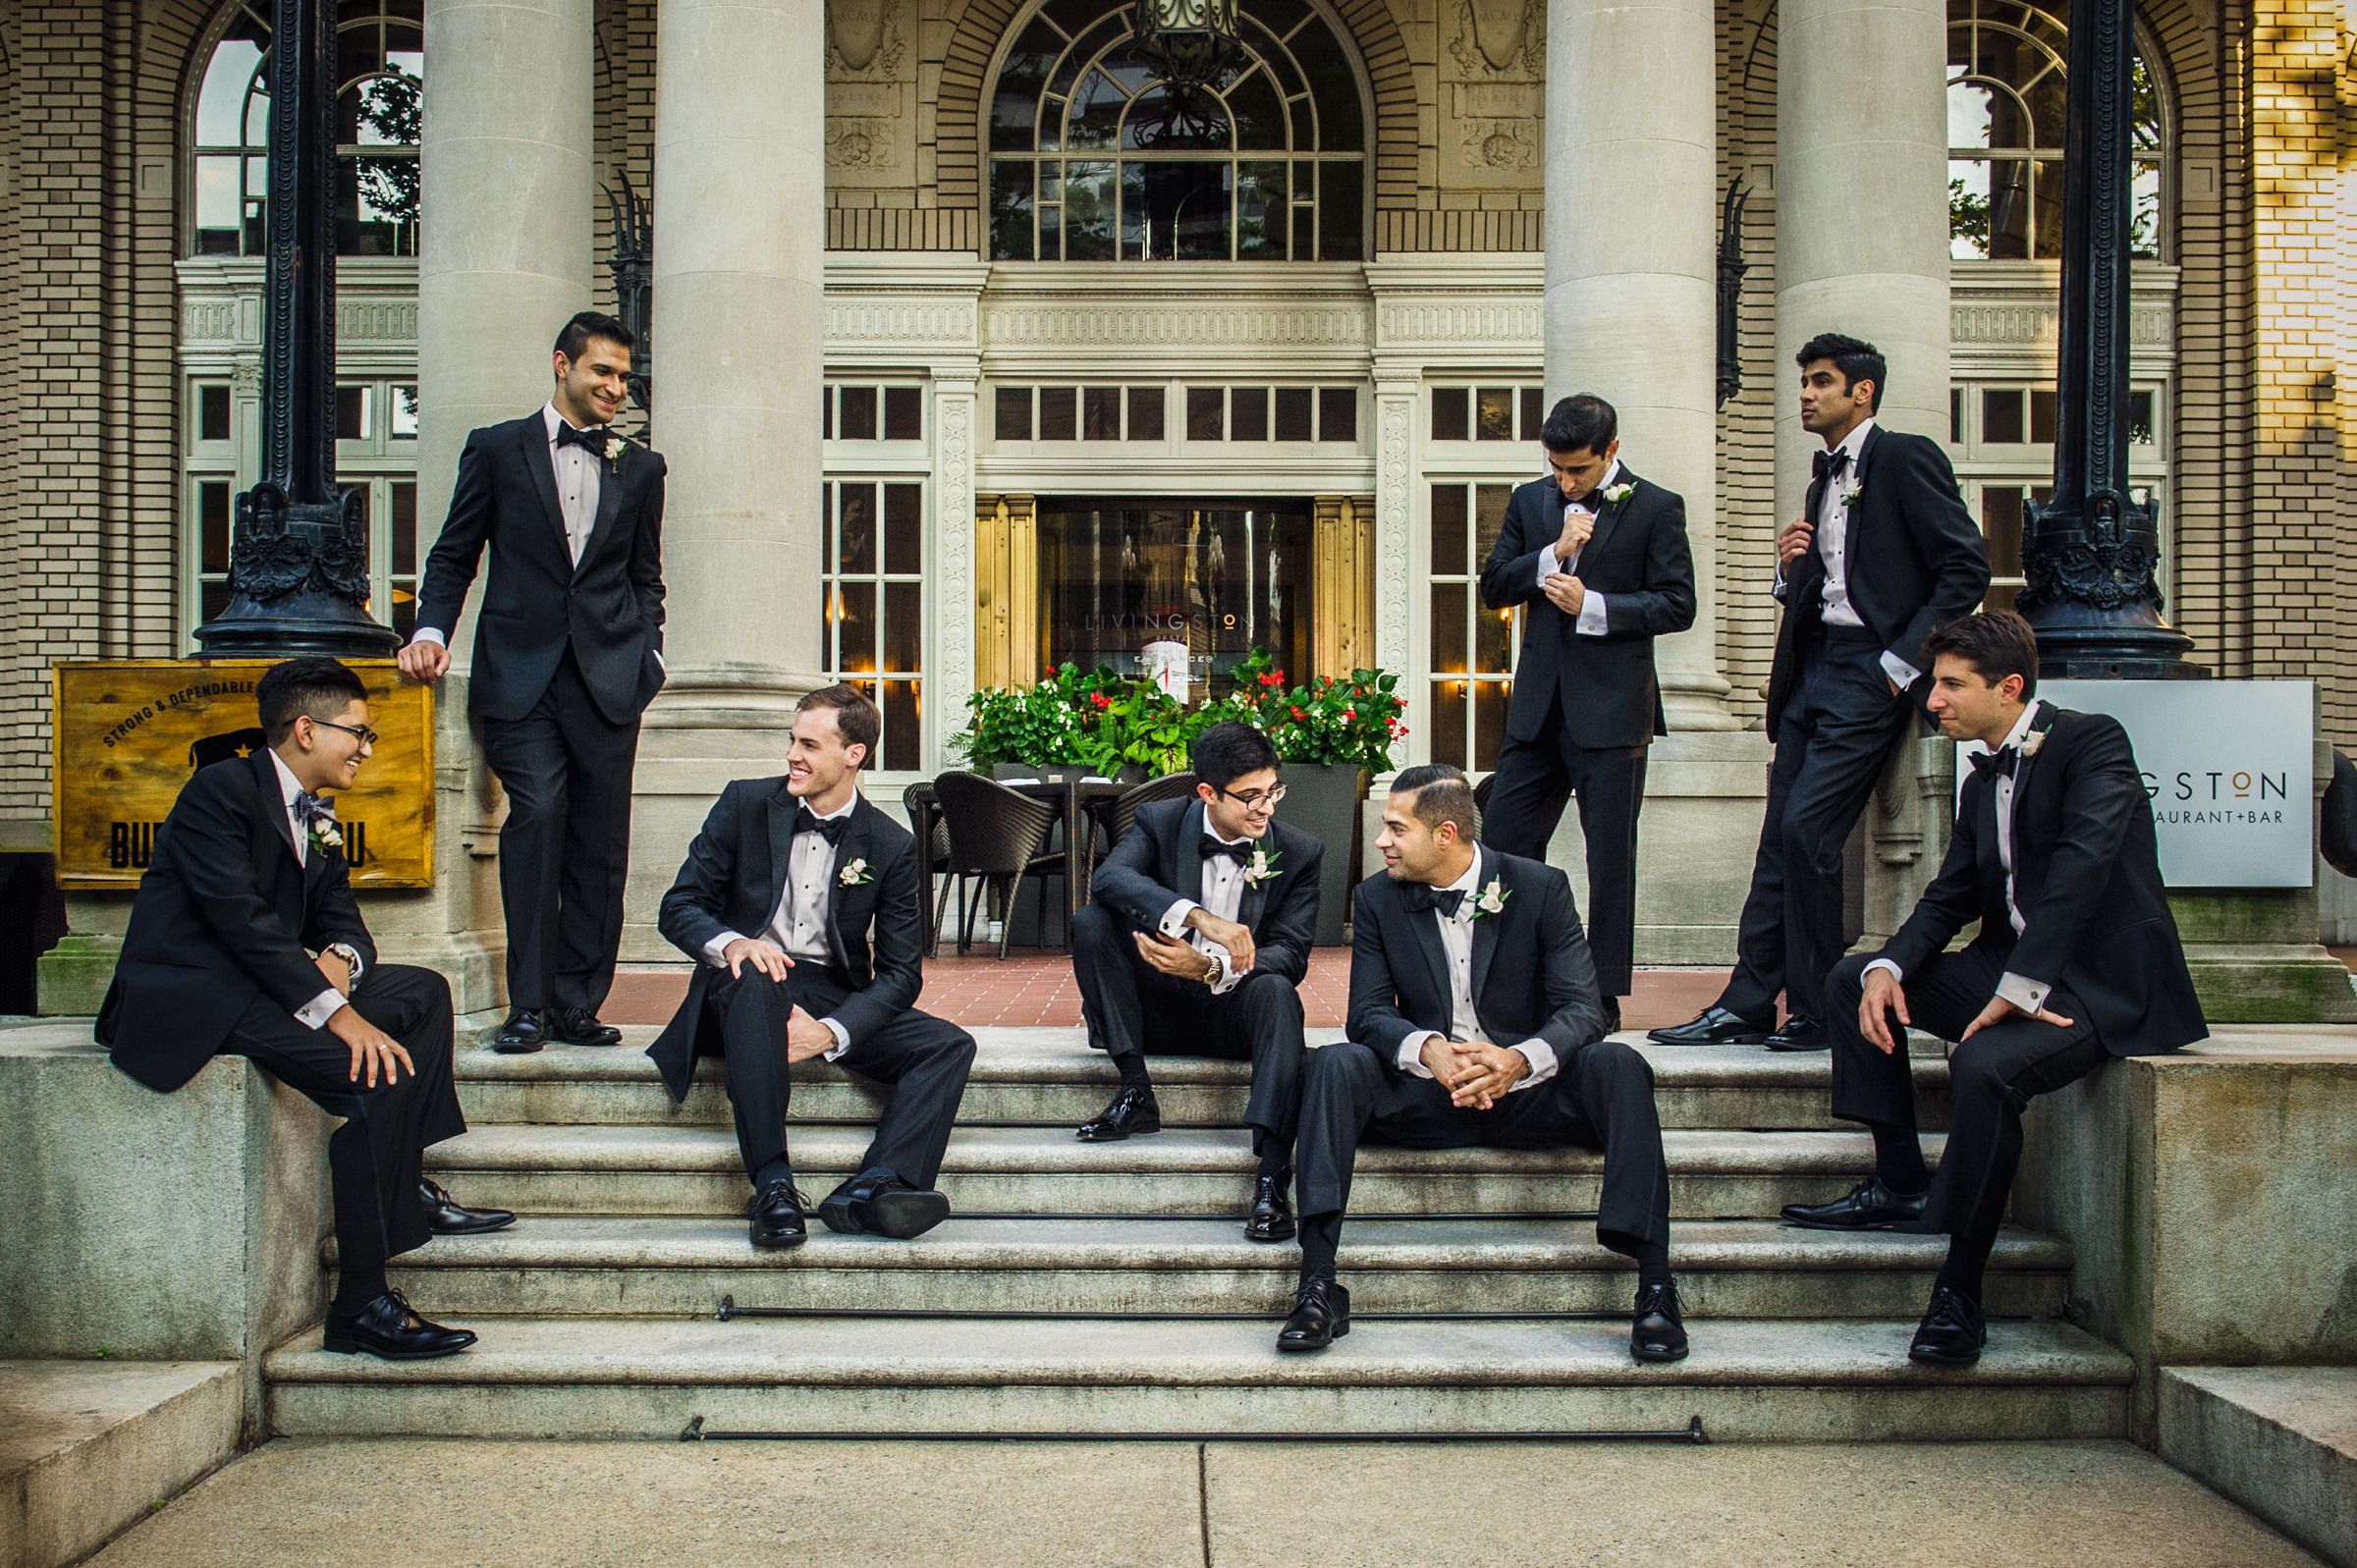 groomsmen-posed-on-steps-of-historic-building-viridian-images-photography